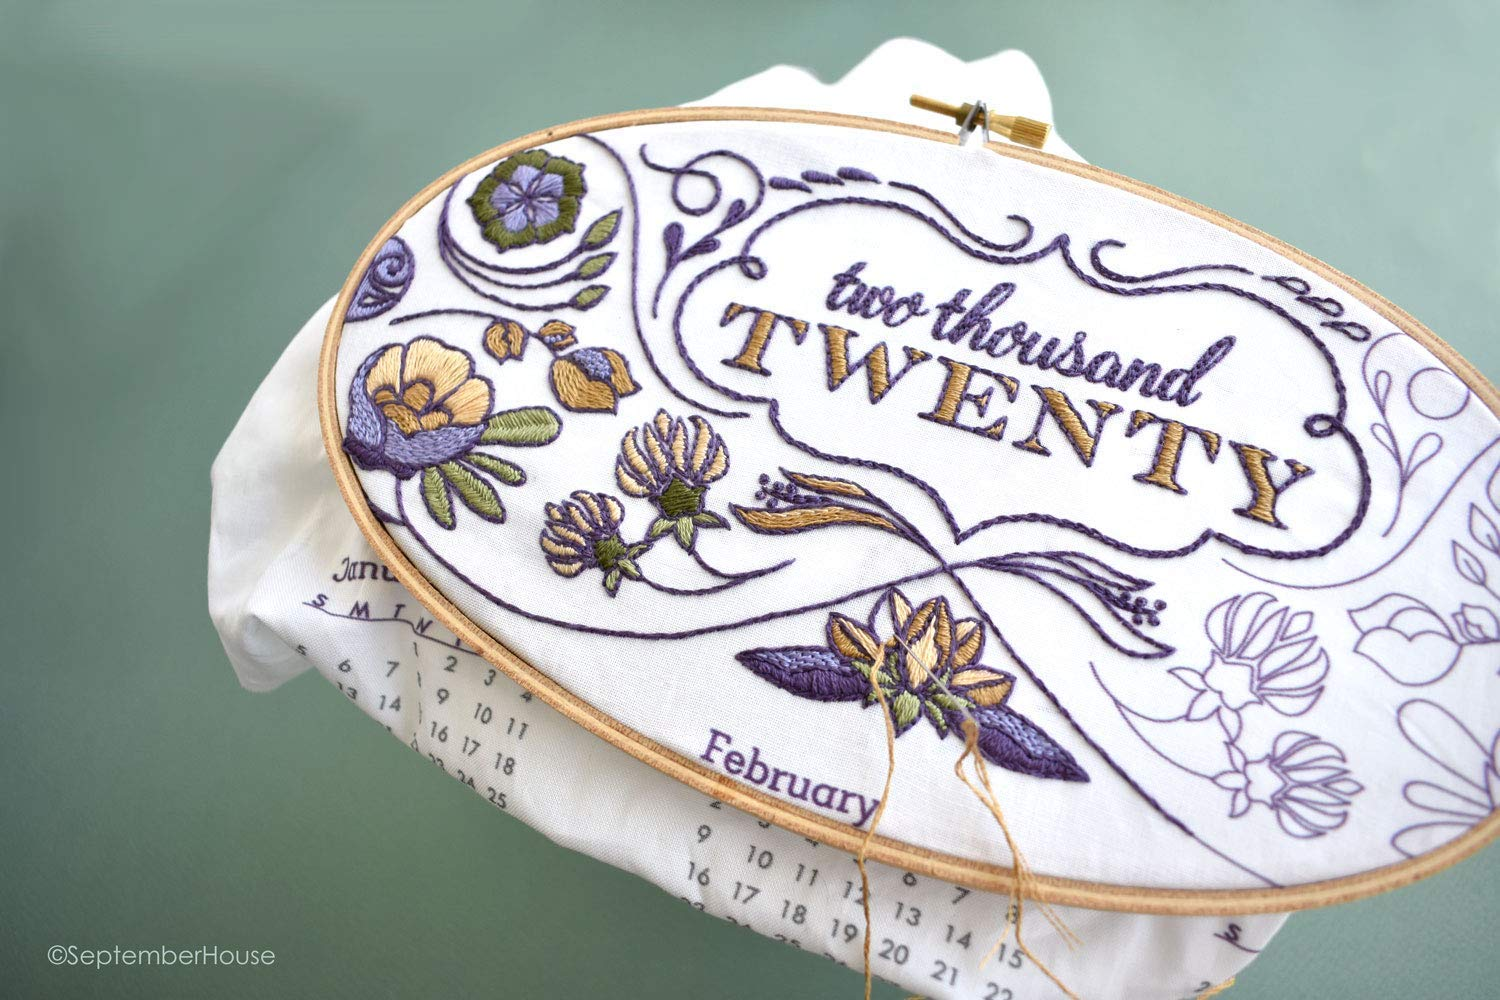 2020 Calendar embroidery kit with matching floss 71LR4m9ahHL